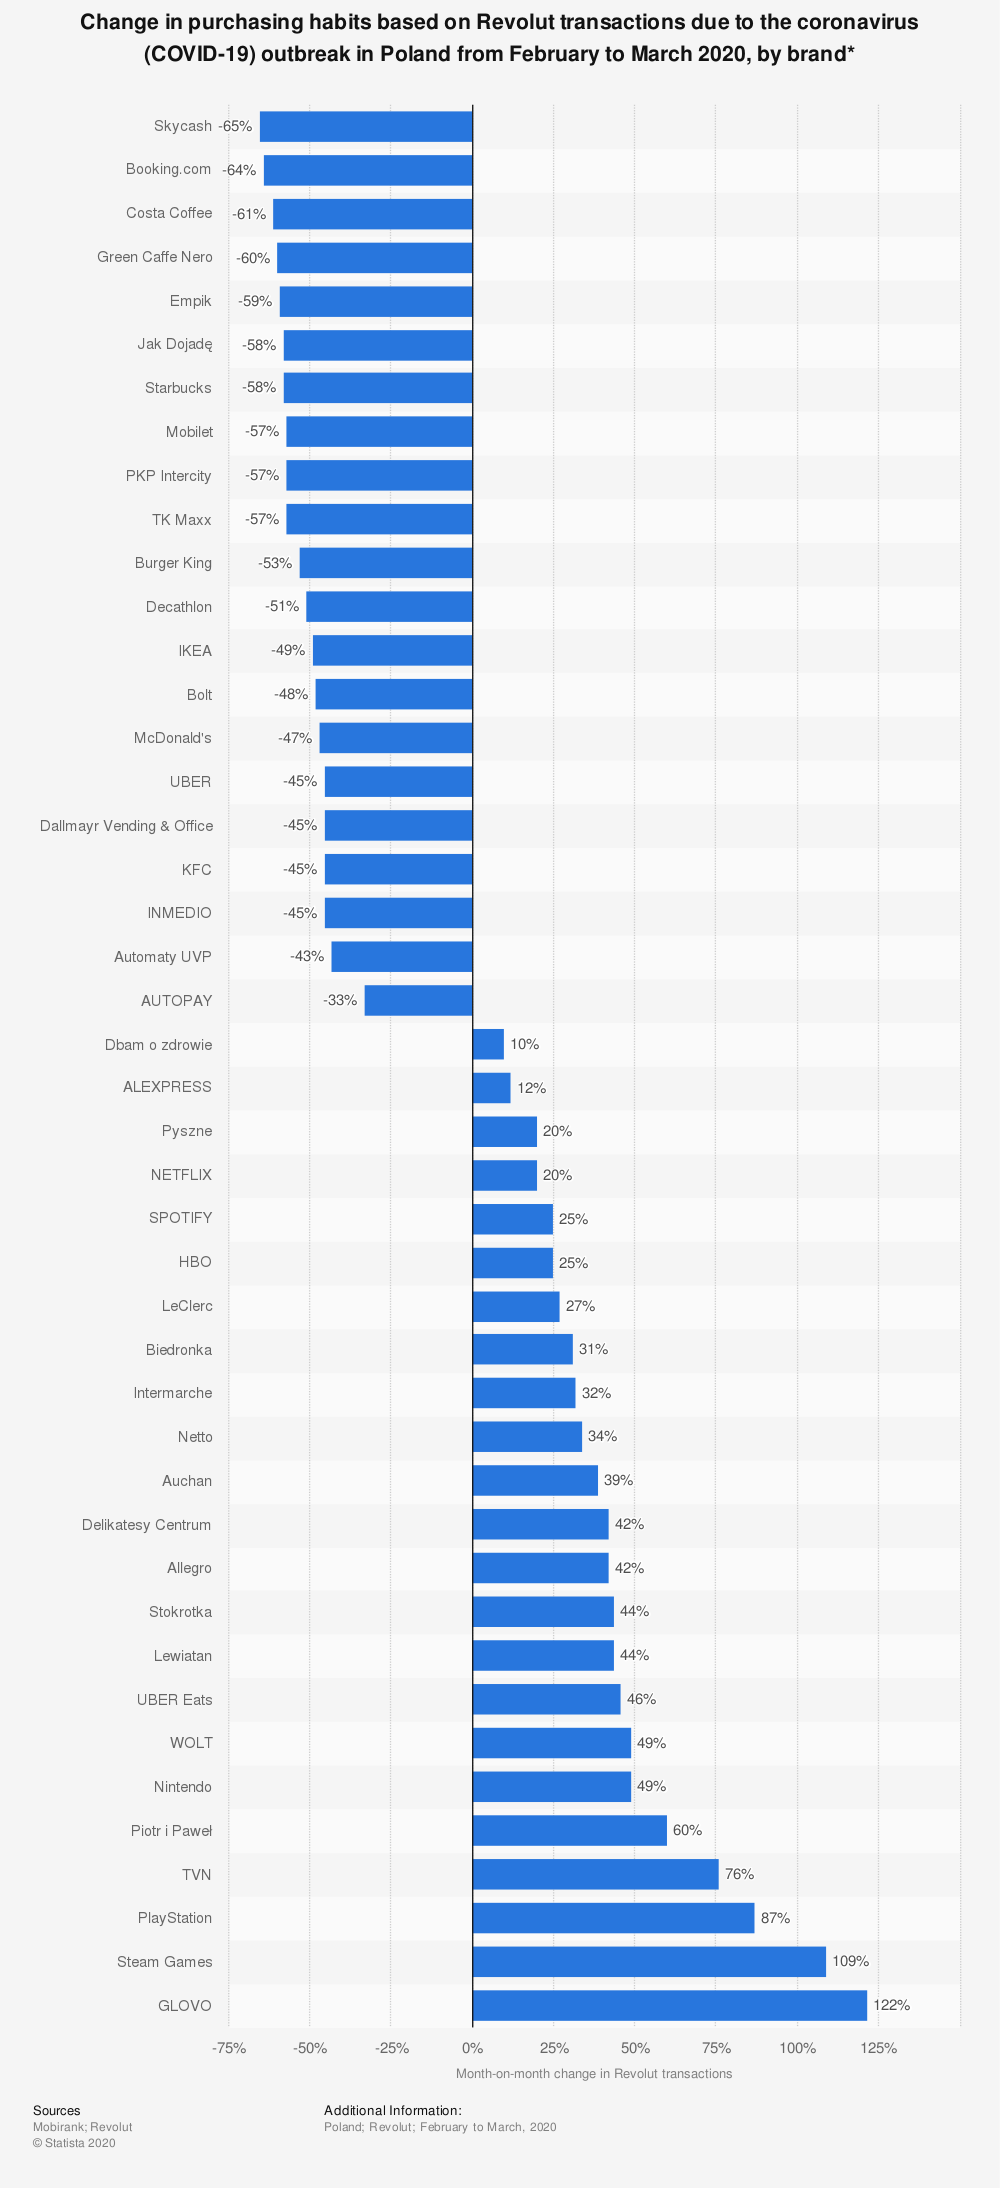 Statistic: Change in purchasing habits based on Revolut transactions due to the coronavirus (COVID-19) outbreak in Poland from February to March 2020, by brand* | Statista